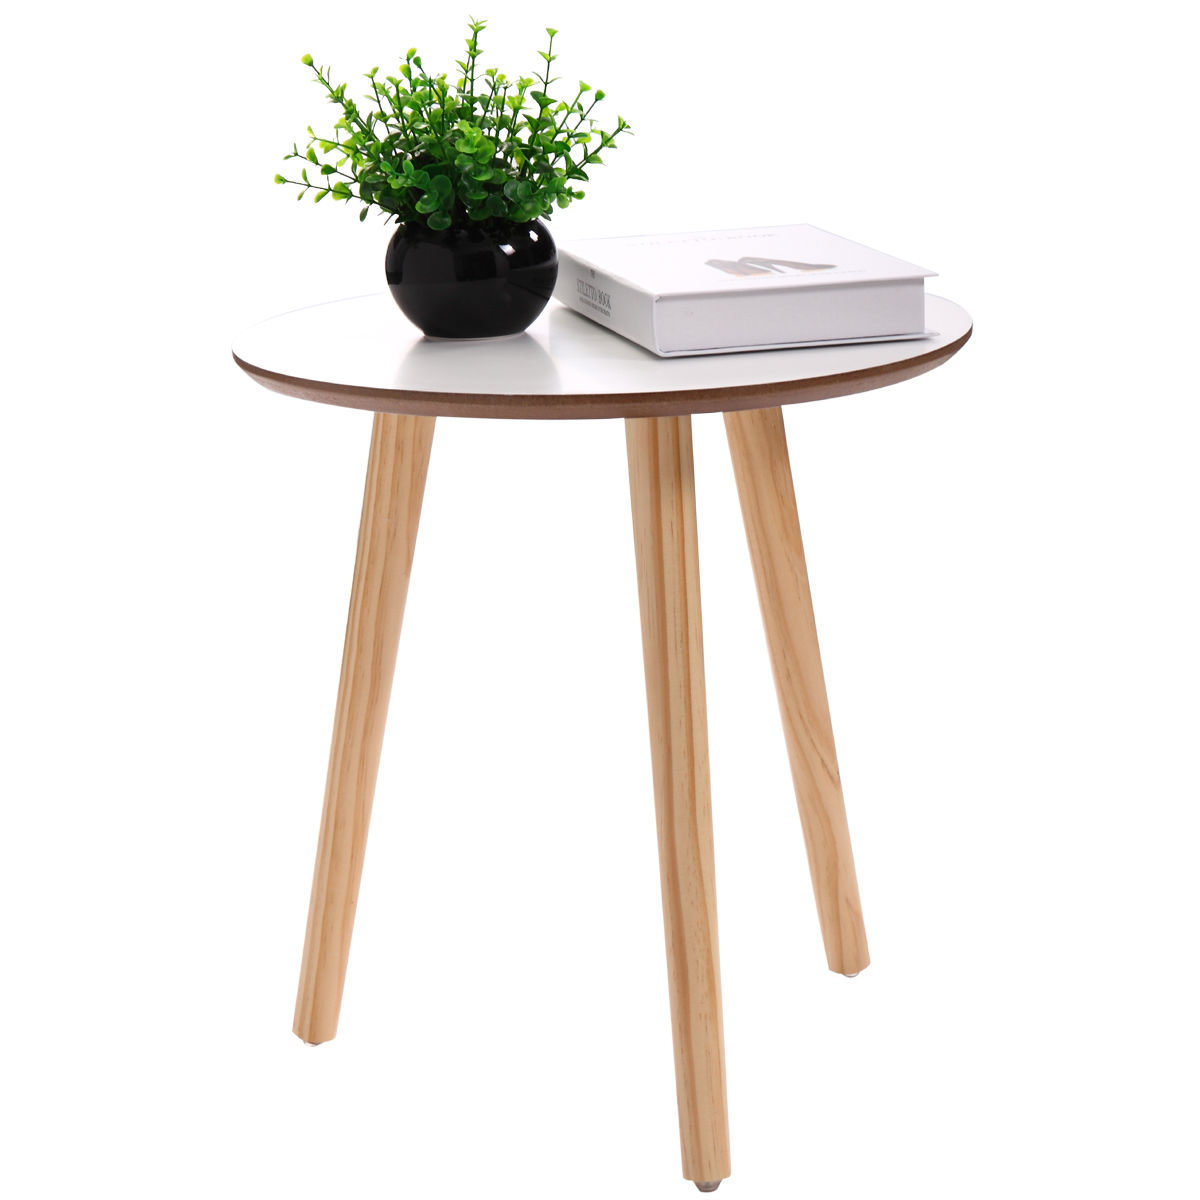 White Wood Simple Round Coffee Tea Table End Table Practical Home Decor